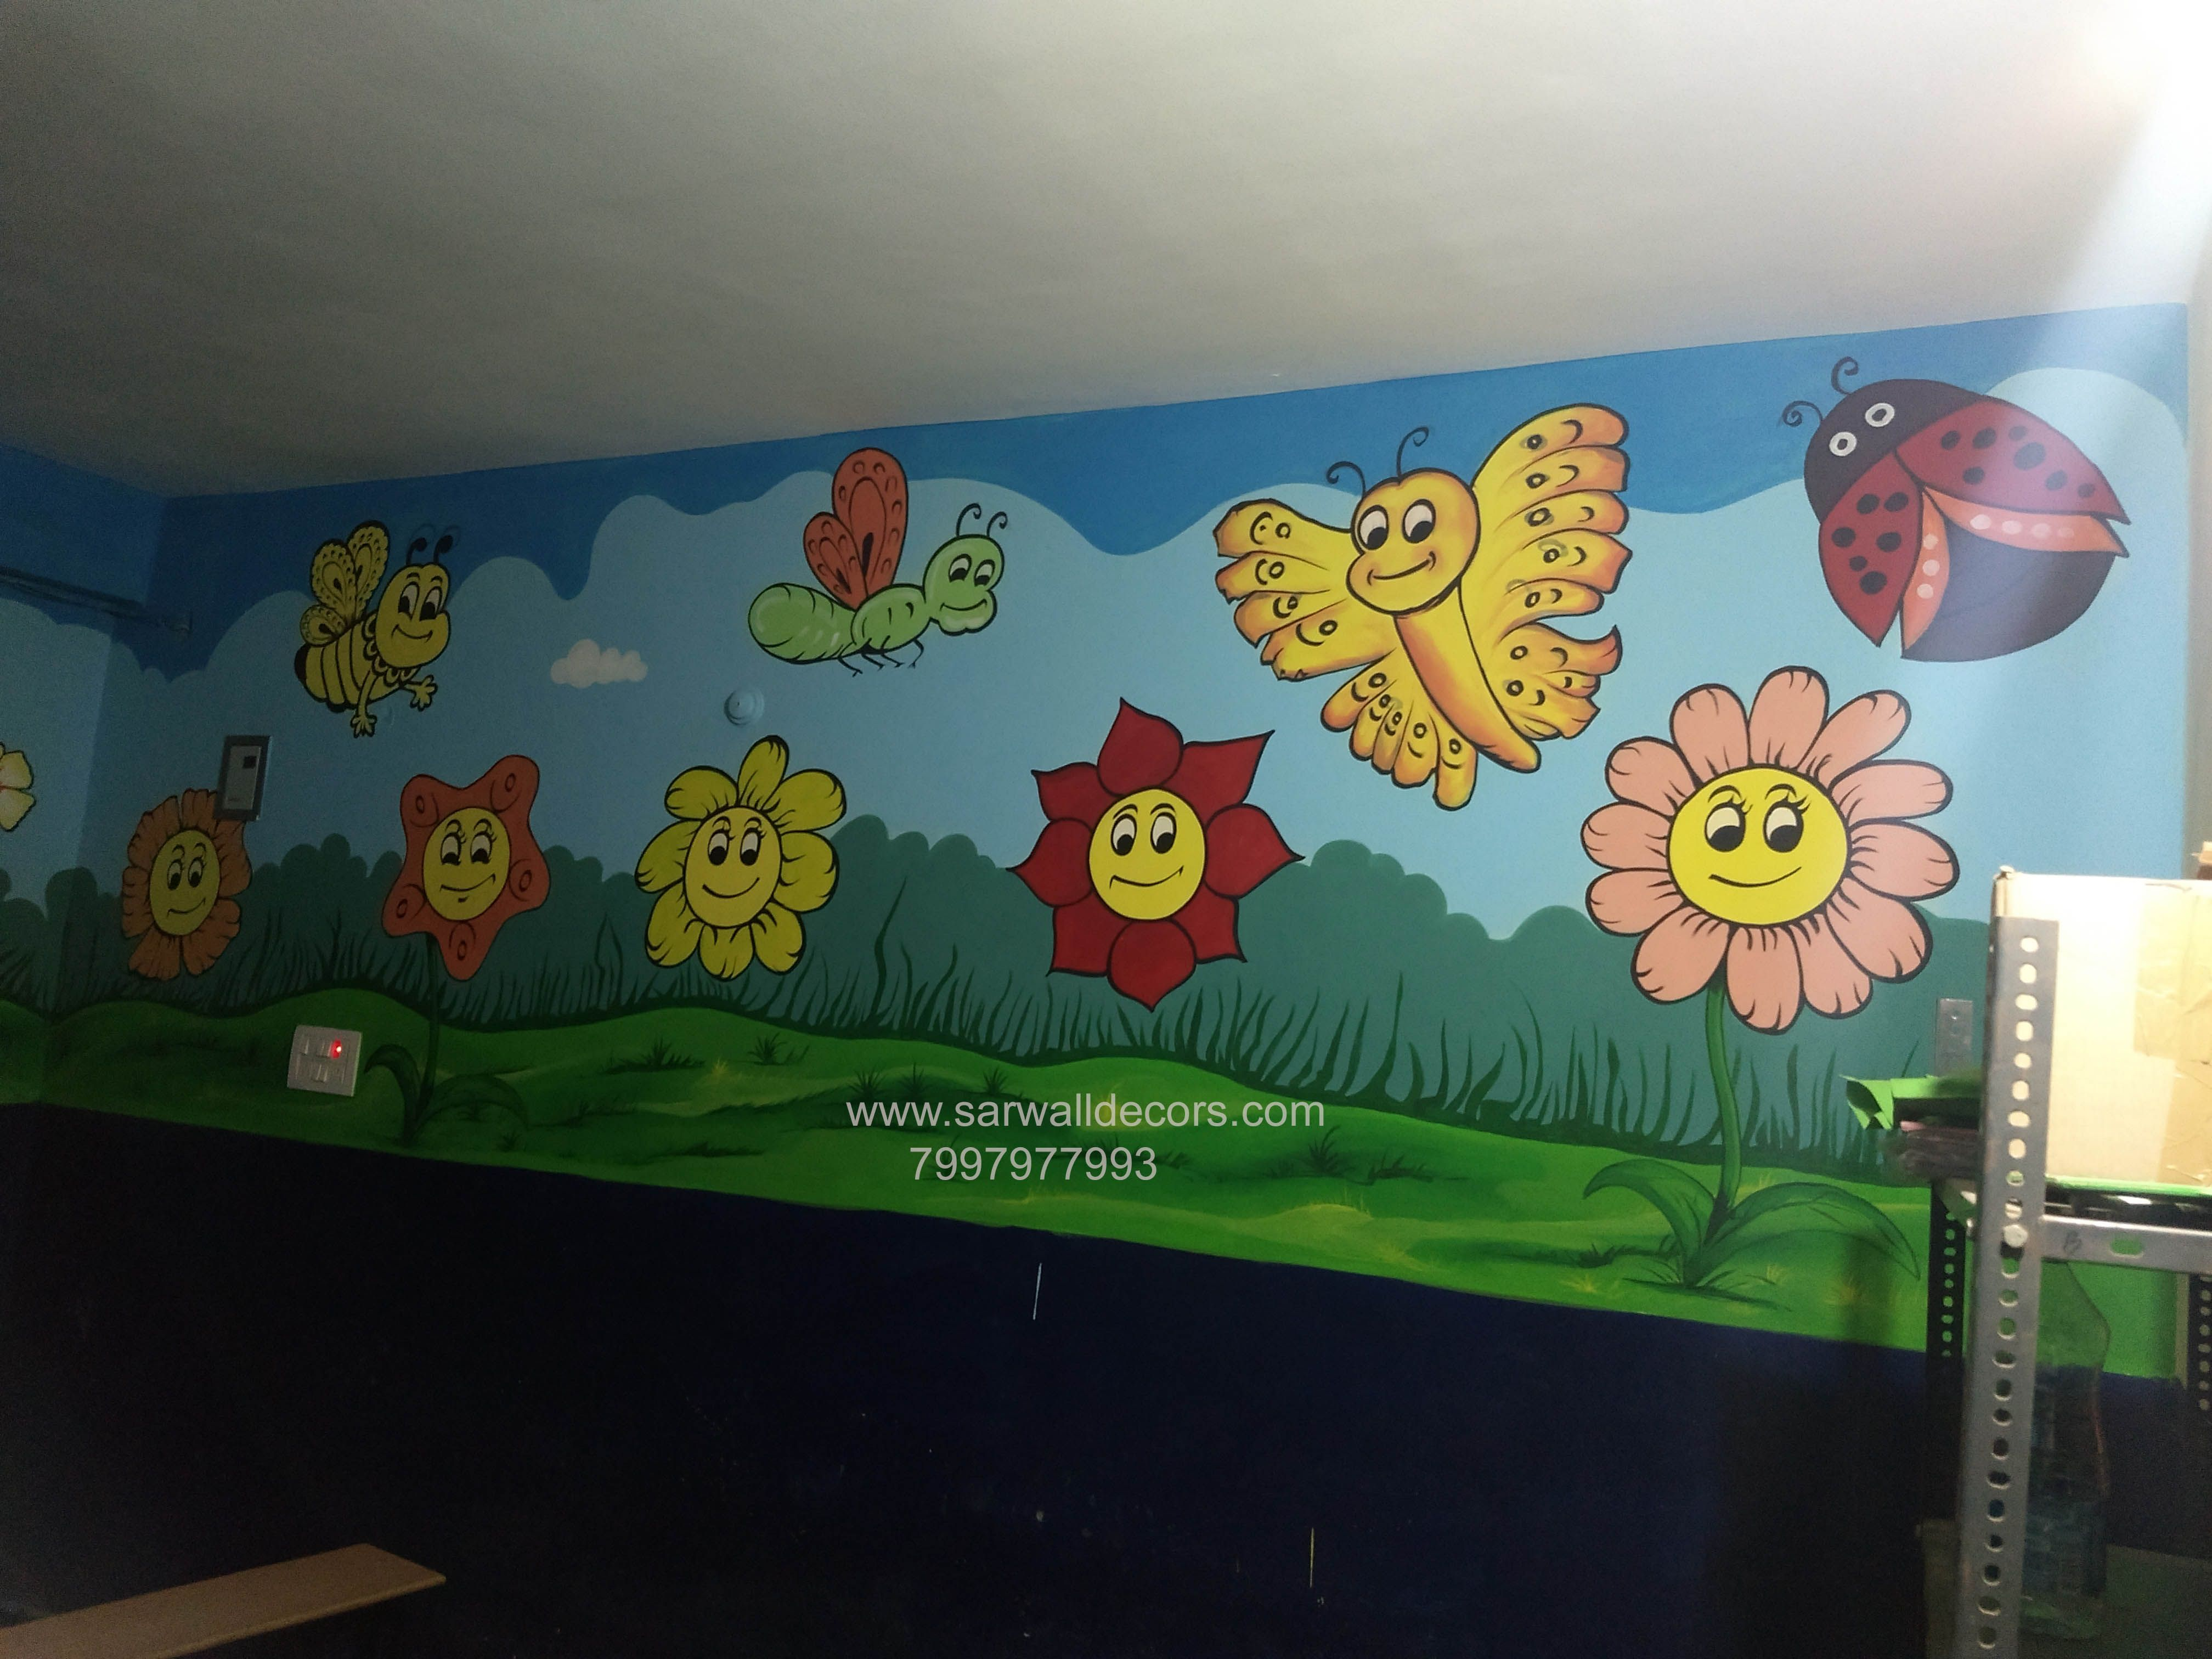 3dwallpaintingforplayschool